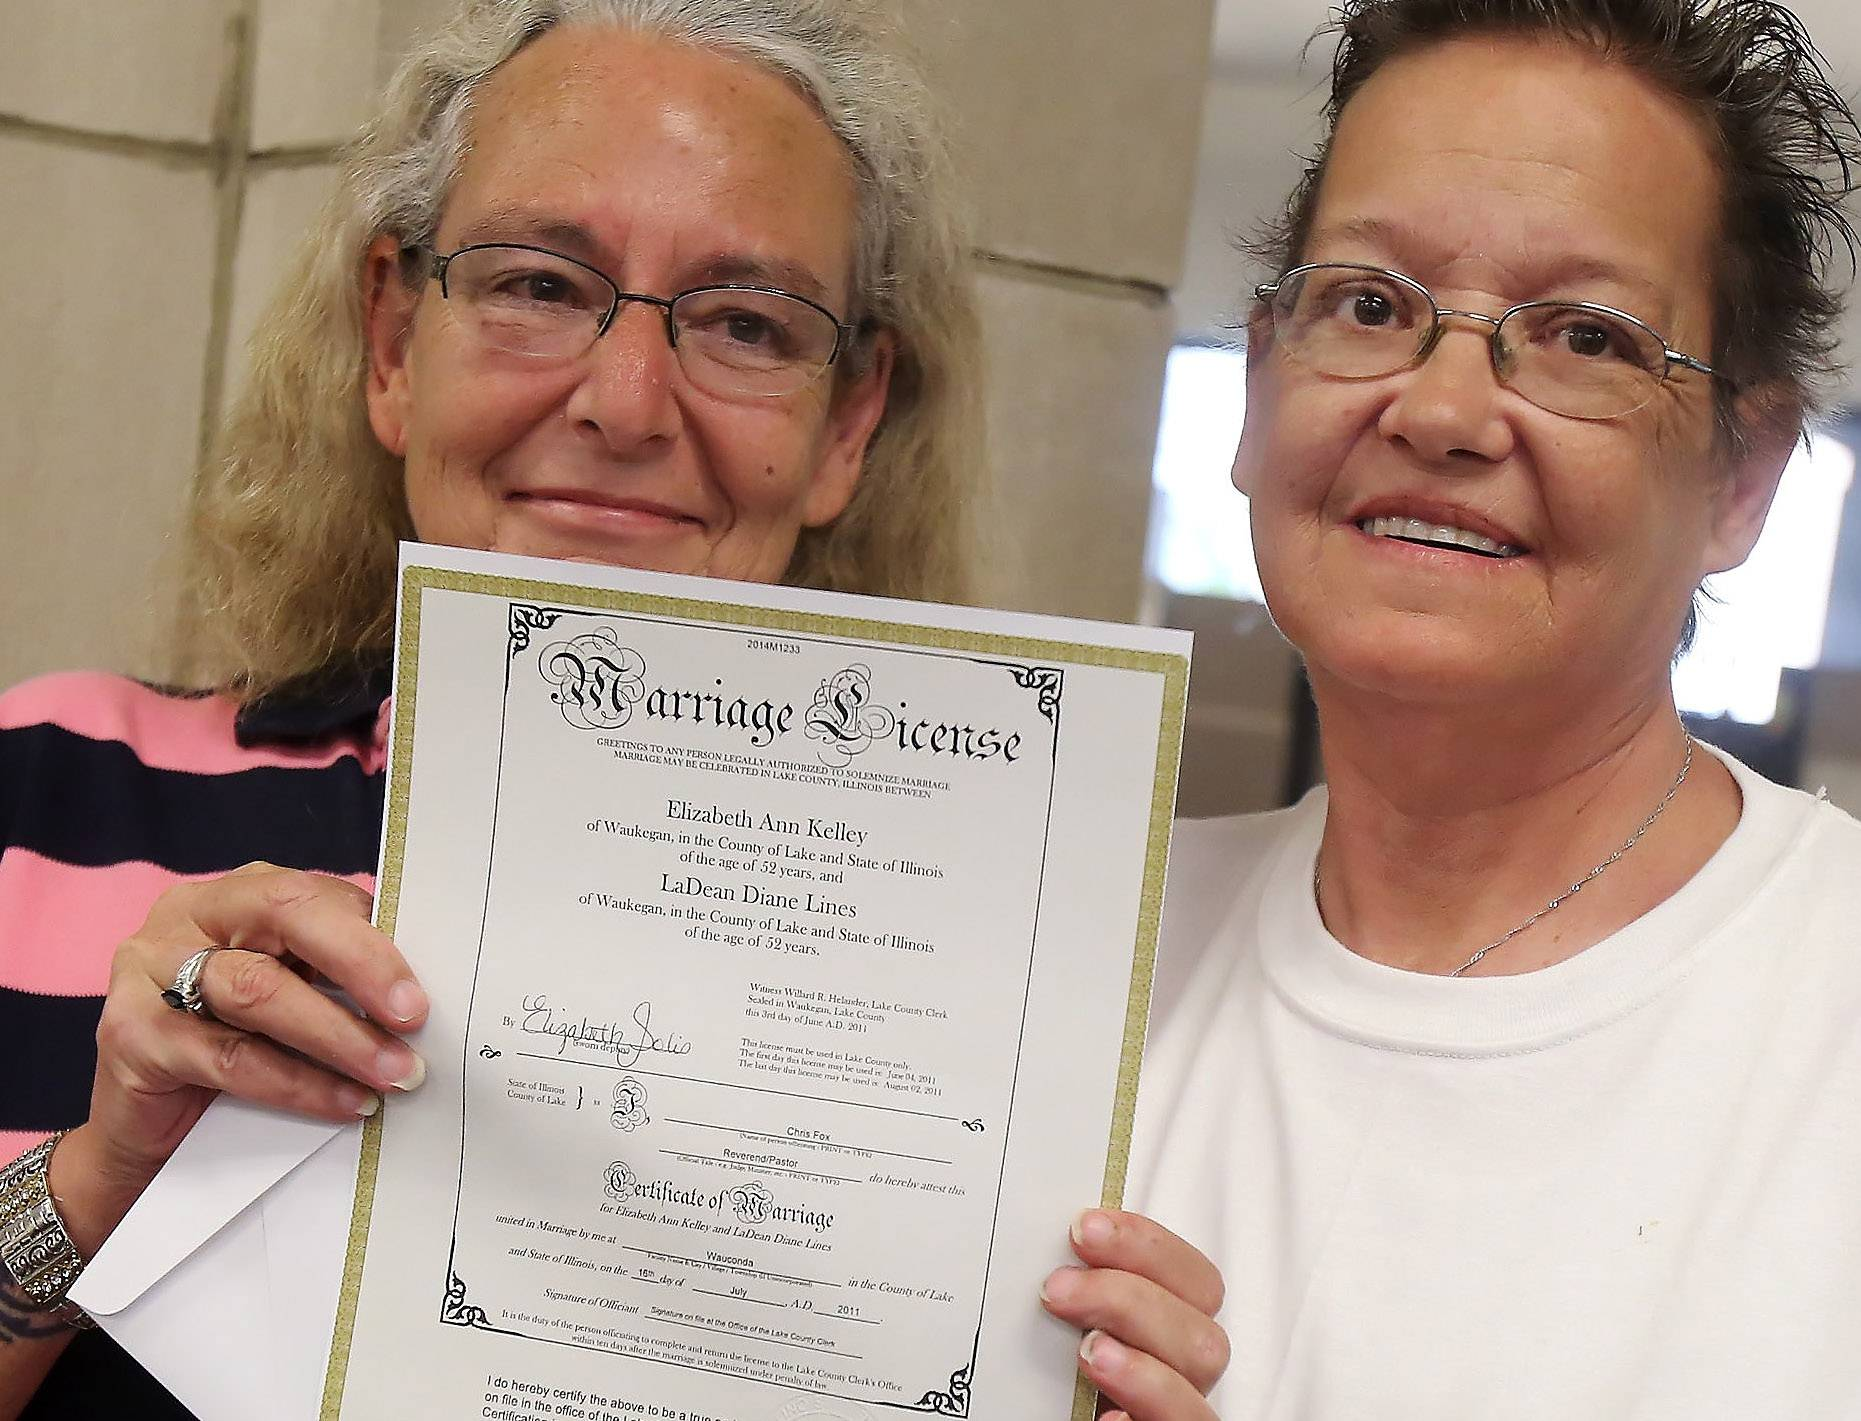 LaDean Lines and Beth Kelley hold up their marriage license after being first in line at the Lake County Clerk's office in Waukegan.